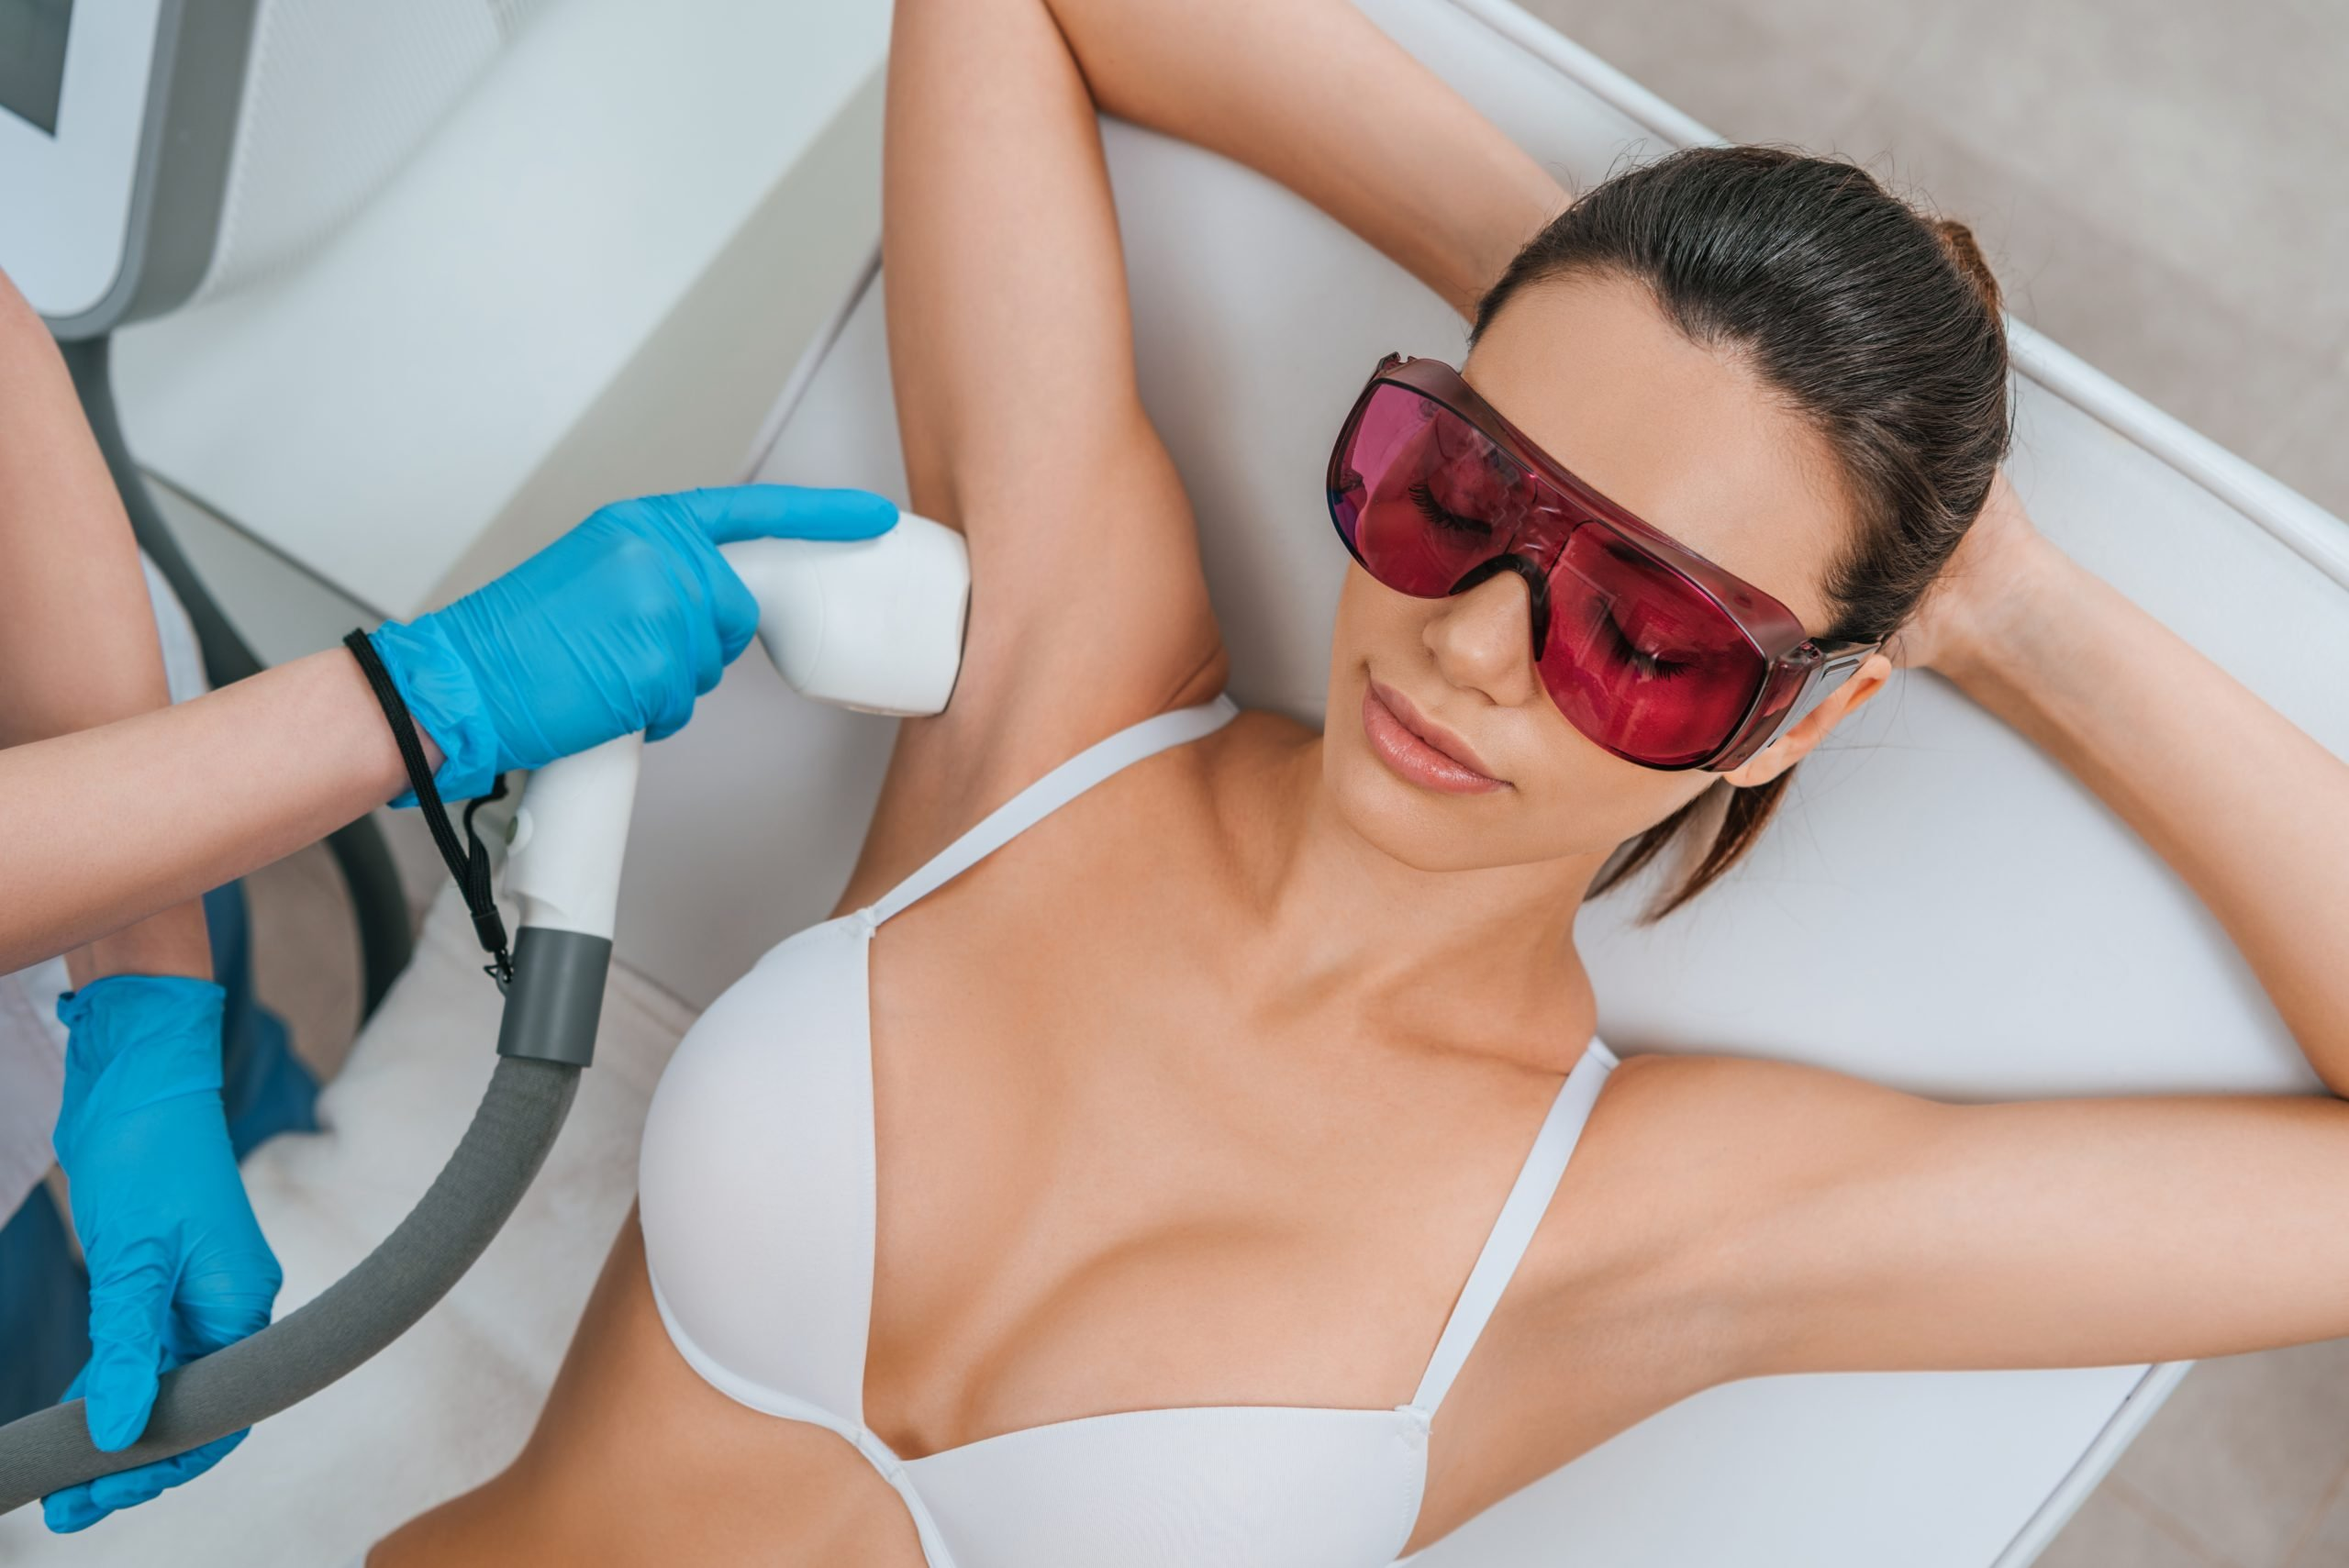 Woman in protective goggles receiving laser hair removal procedure on armpit